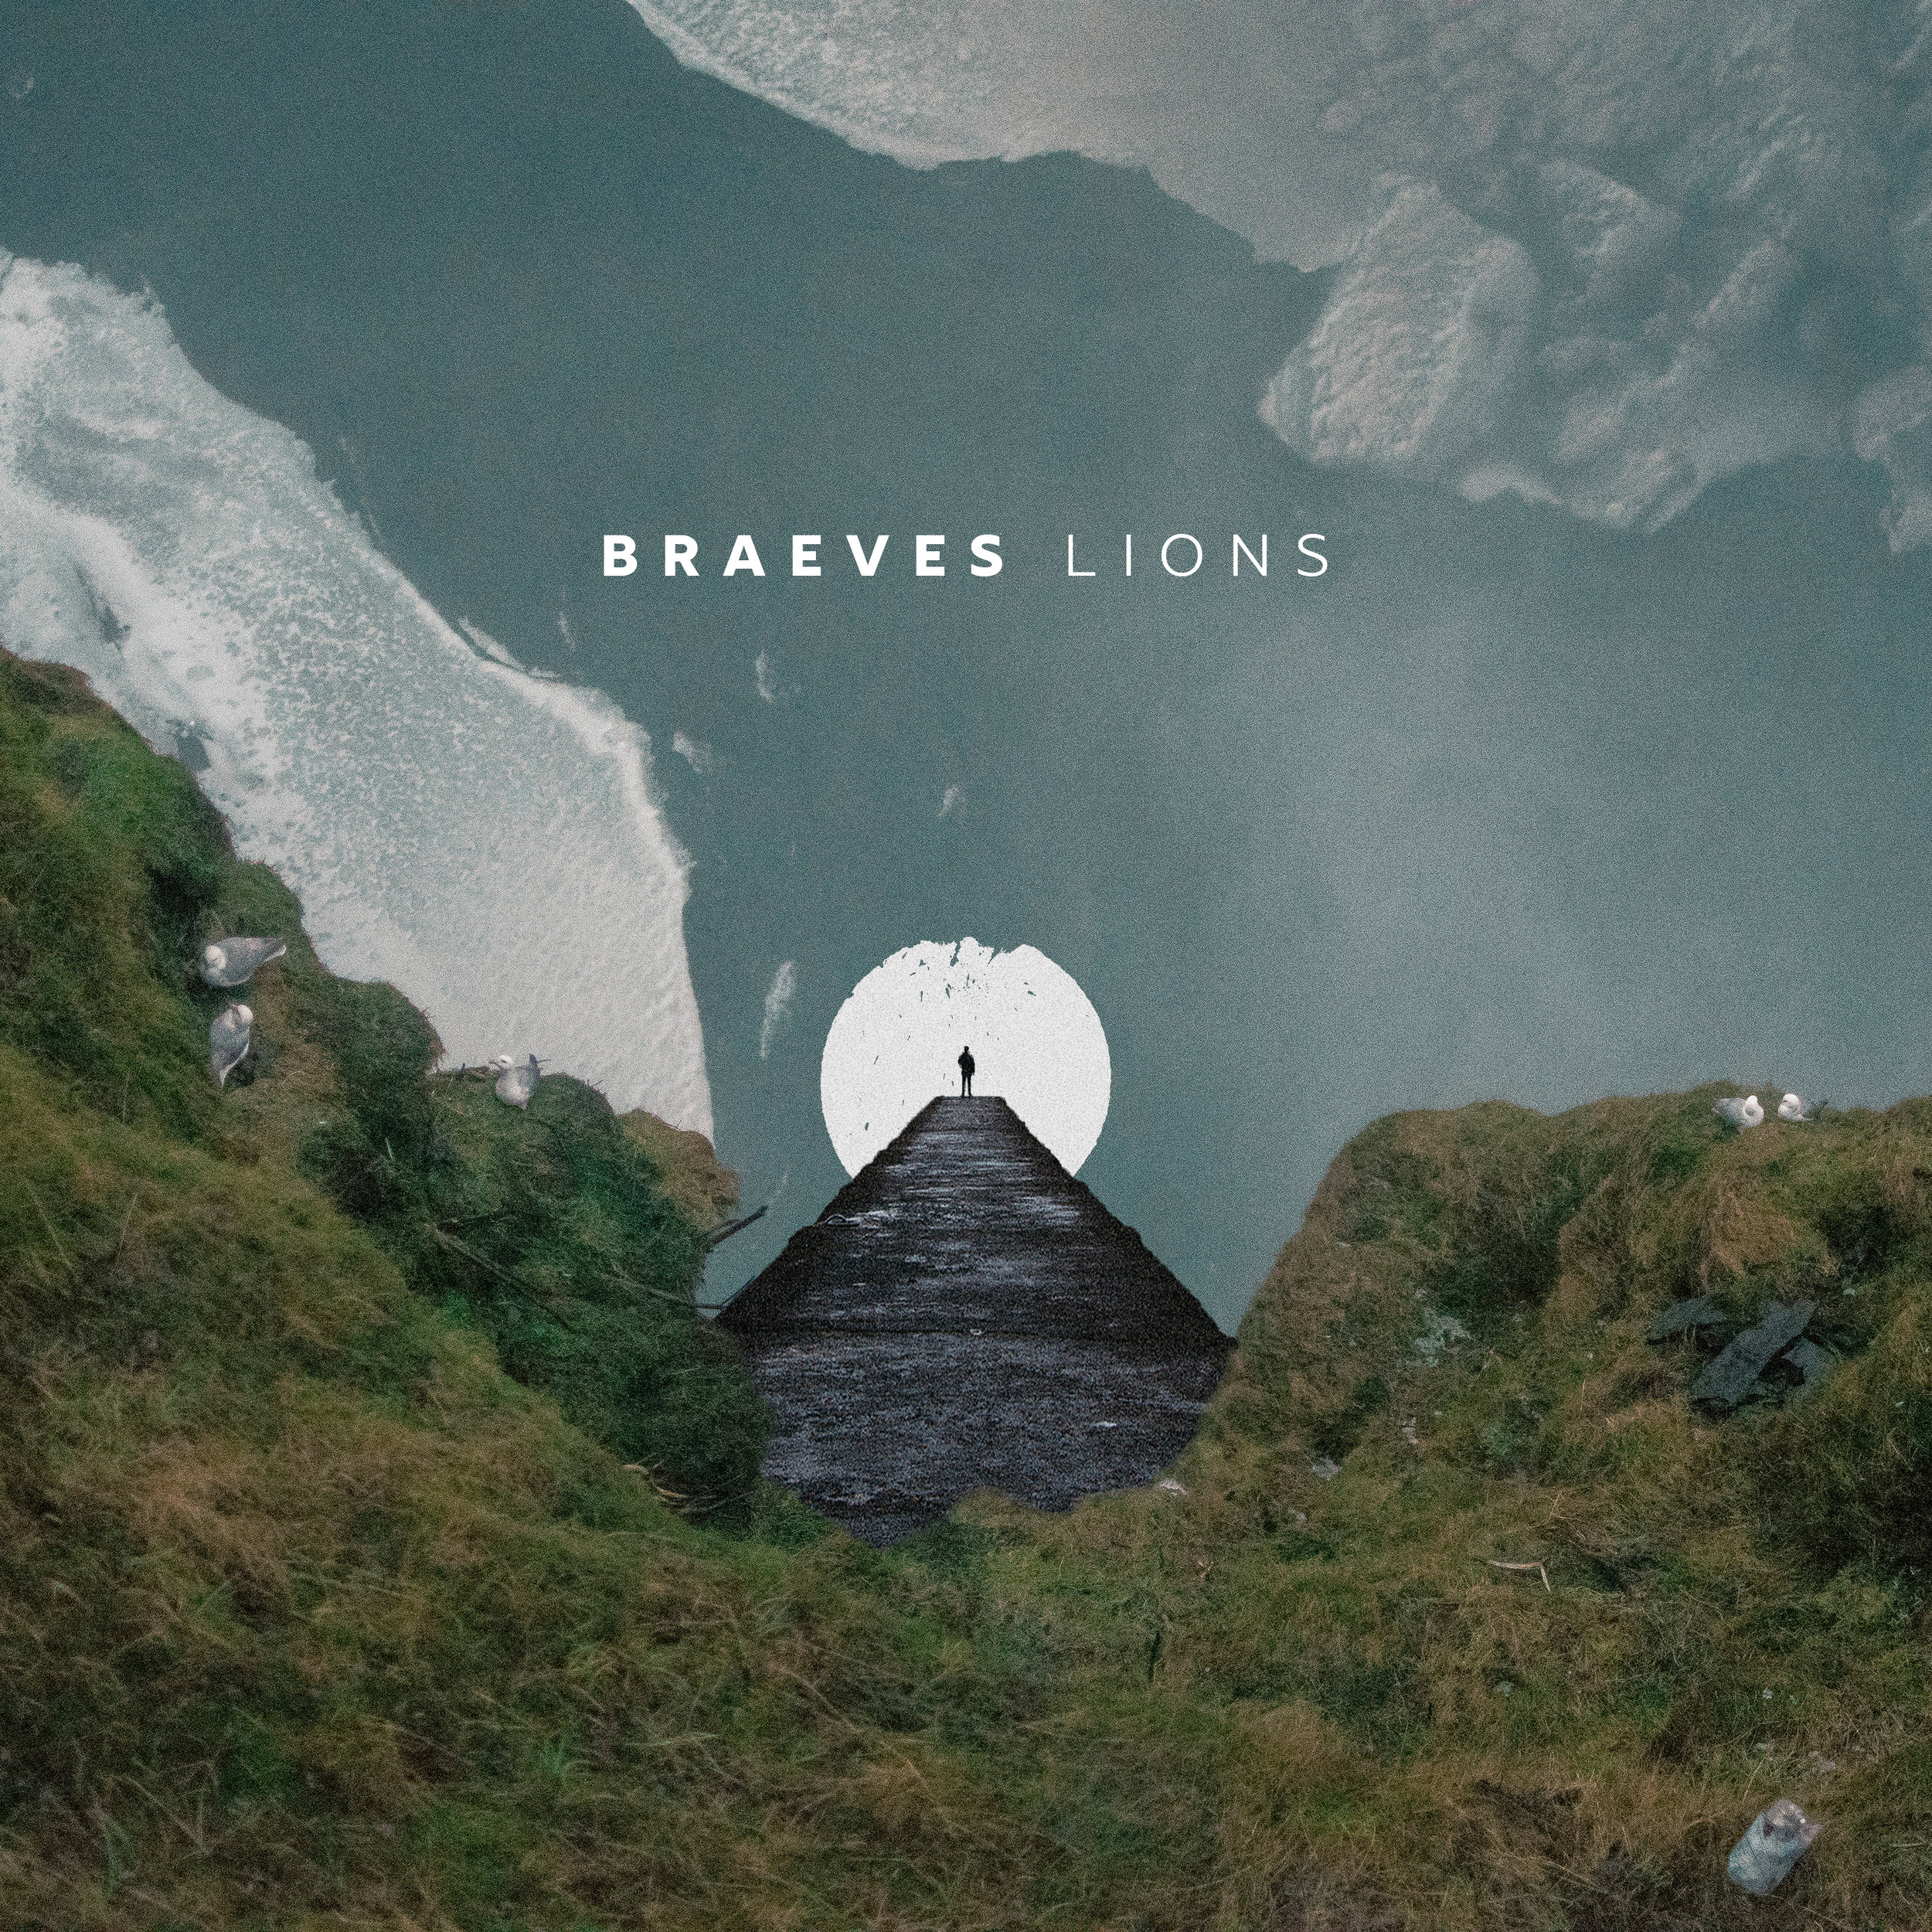 Lions - Single   Released 7/11/18 Produced and Mixed by Grayson Sanders Mastered by Chris Gehringer Artwork by Bailey Zindel    Play on Apple Music :  apple.co/2Nhqdae